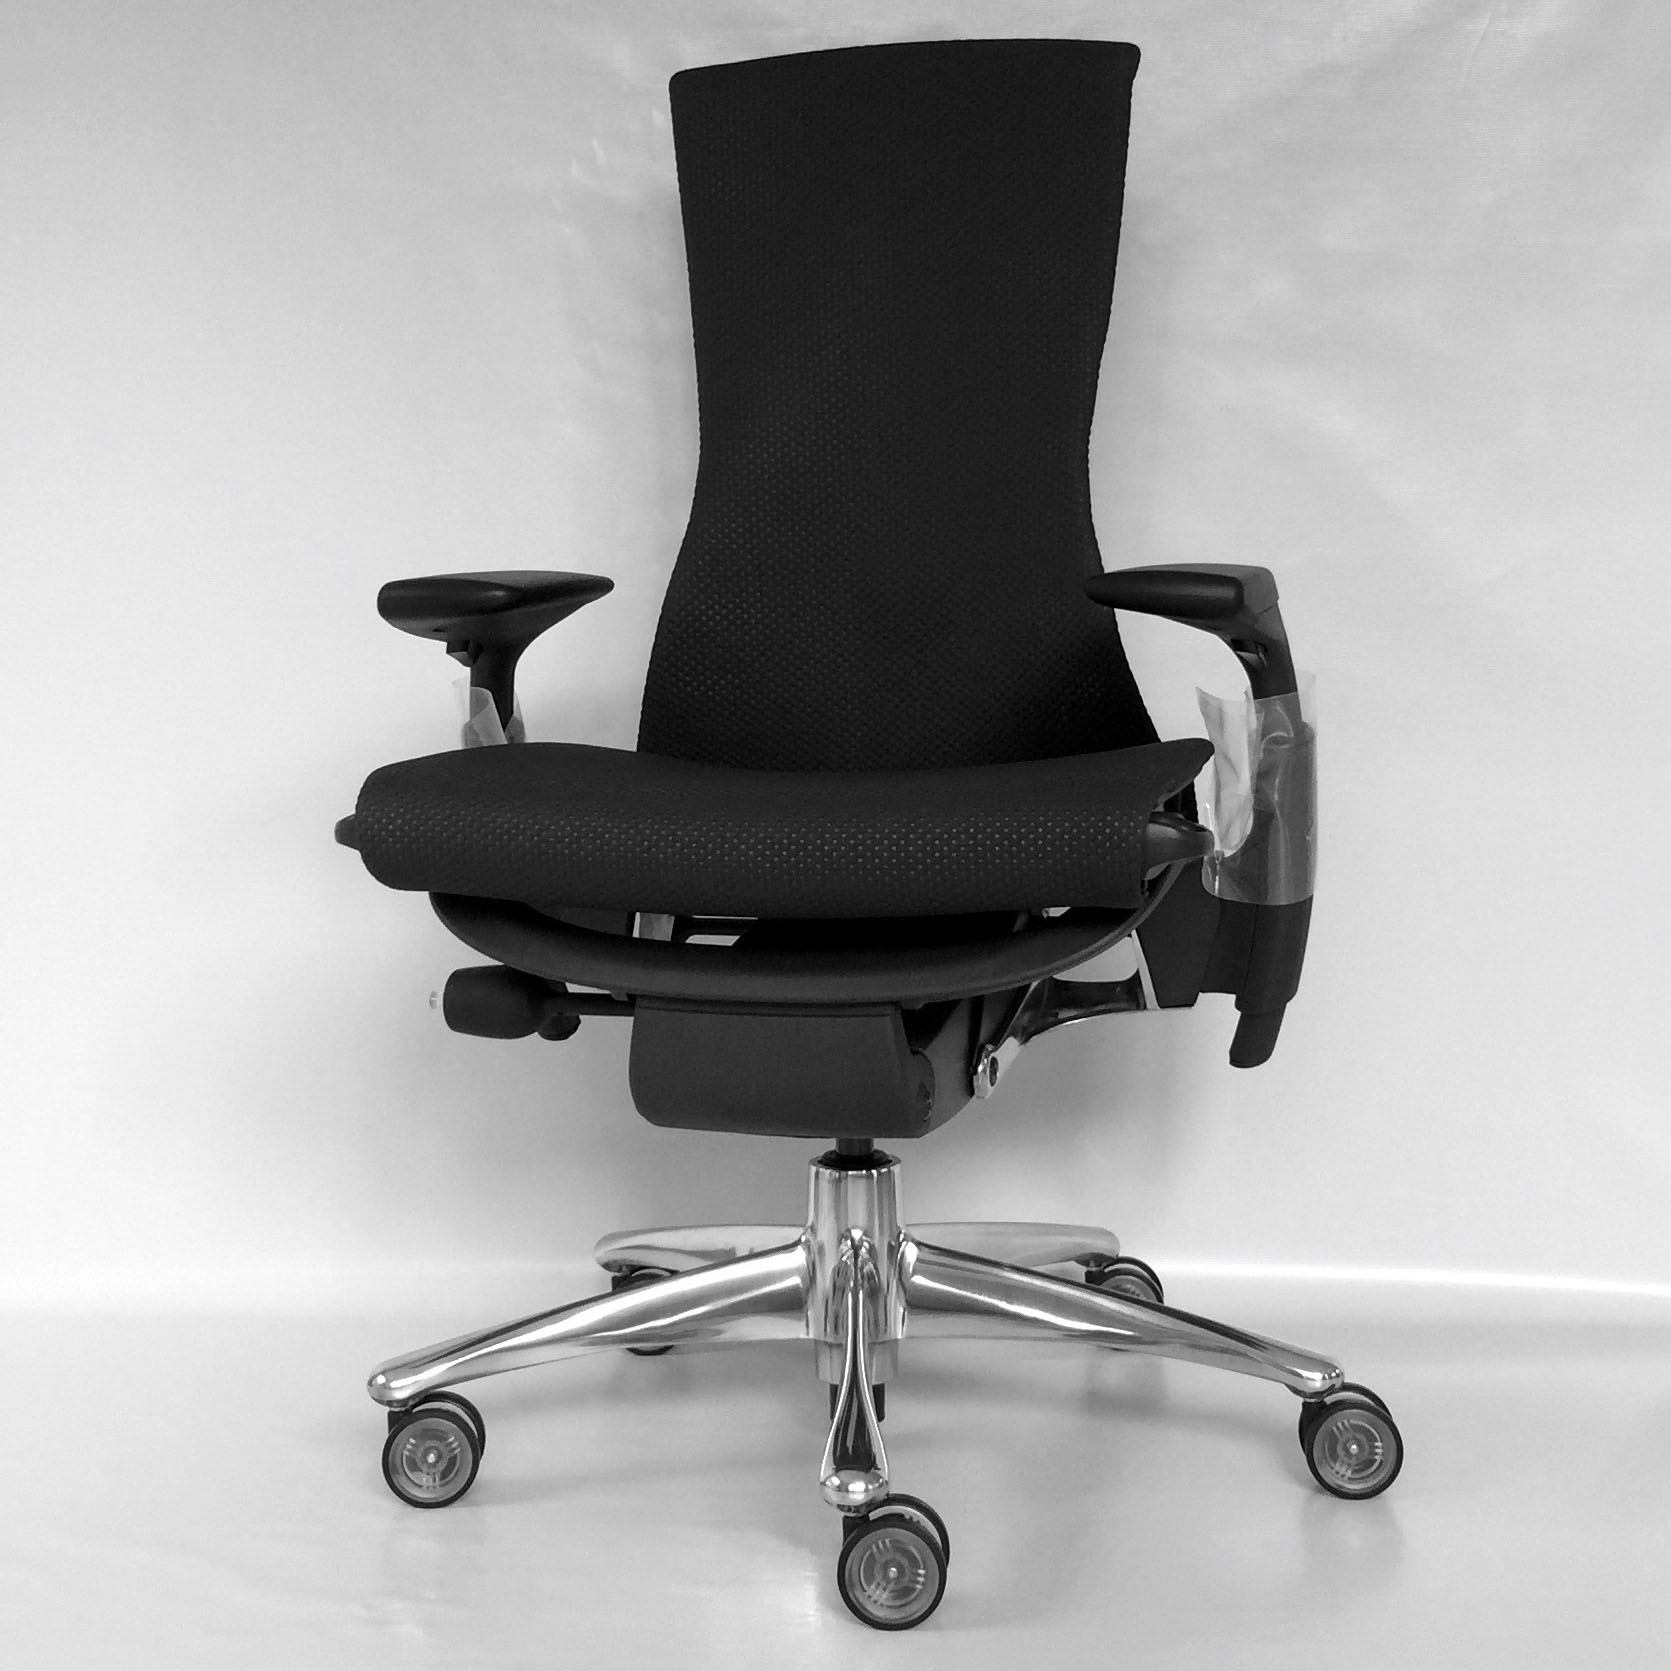 EMBODY_CHAIR_CARBON BALANCE 01